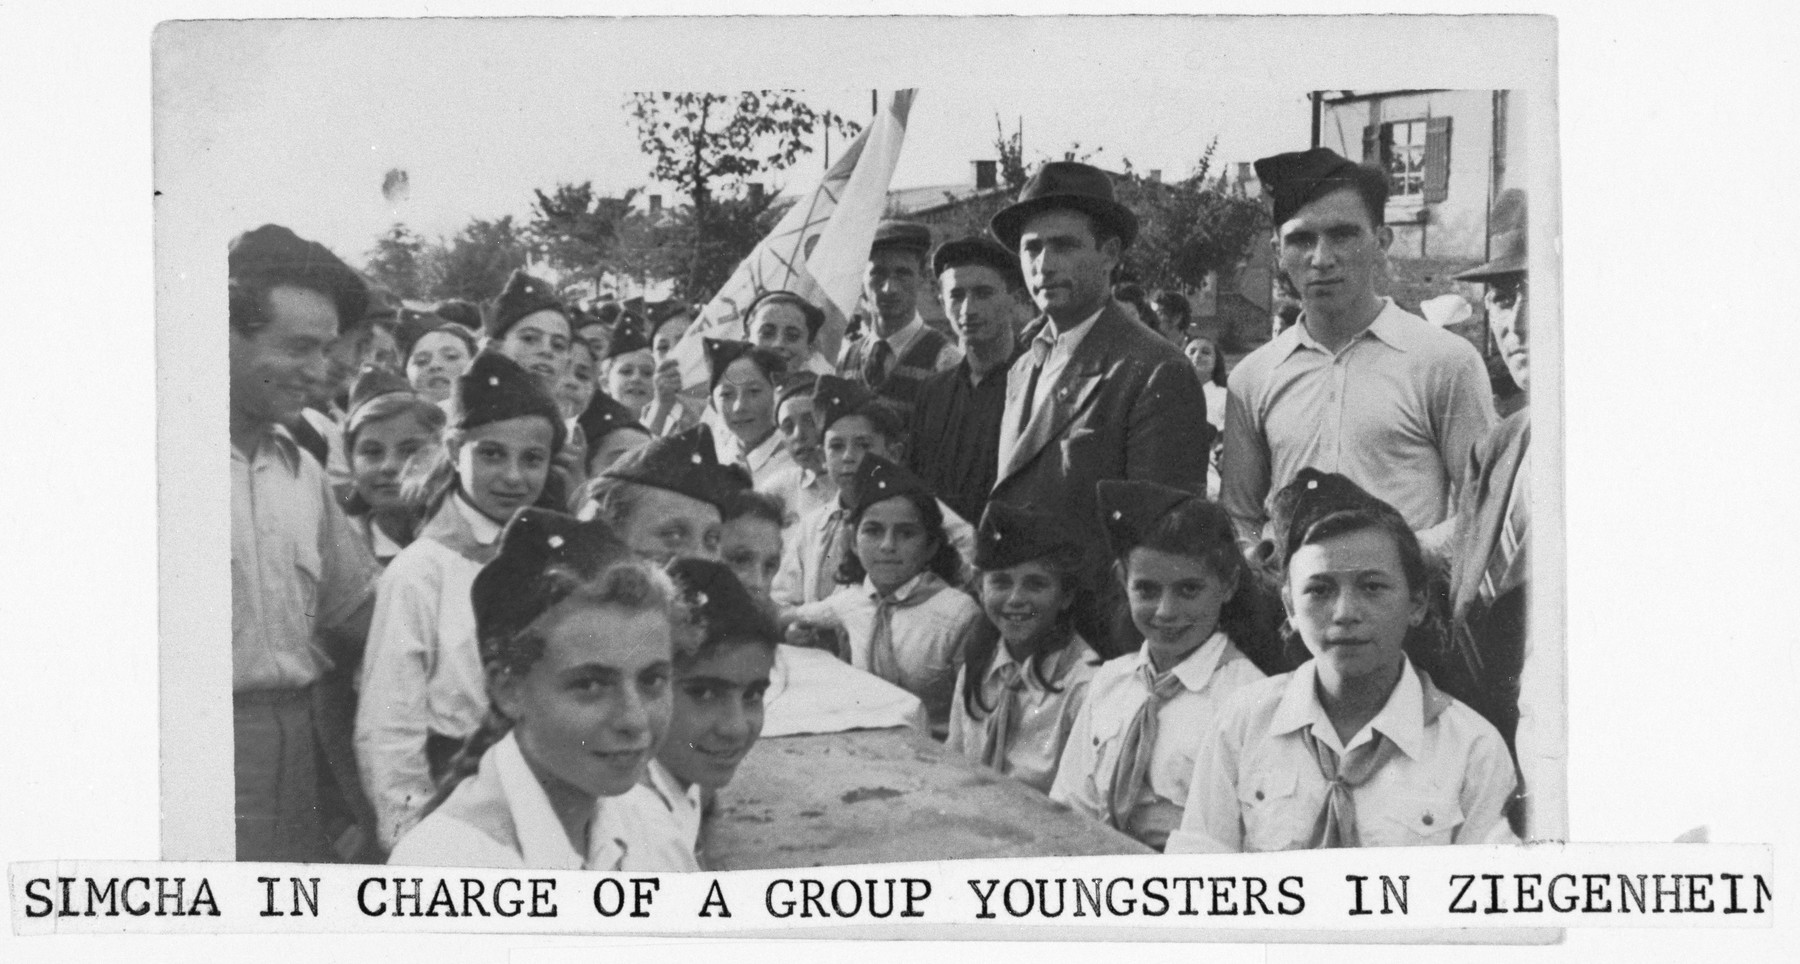 Children in the Ziegenhain displaced persons camp sit outside around a table in their new youth movement uniforms.  Posing with them are their two instructors, Simcha Langzam and Abraham Lomp.